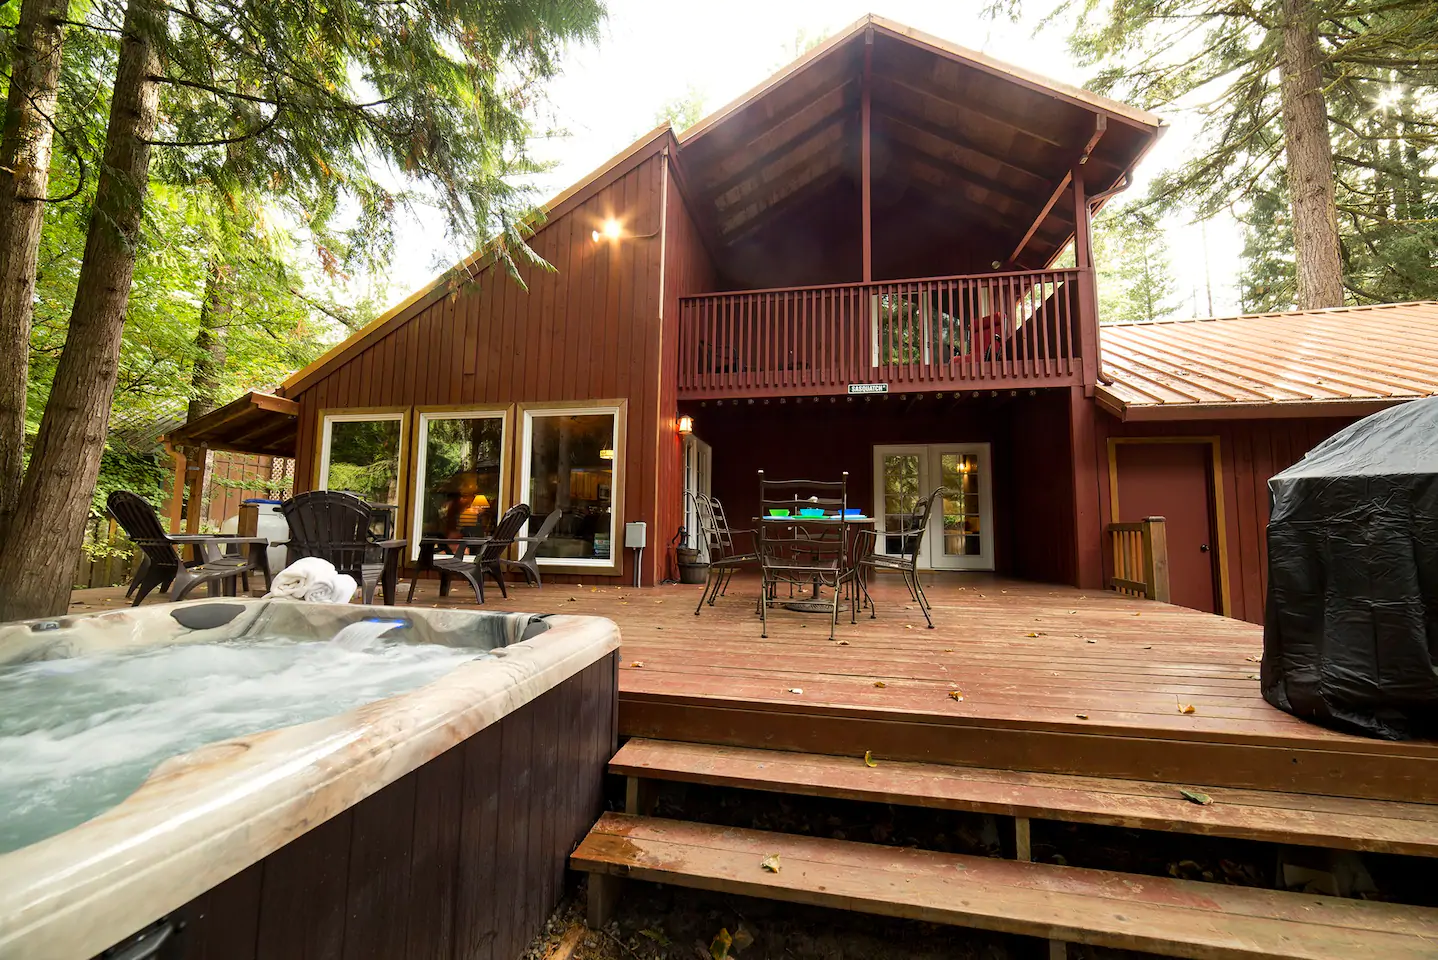 The best Airbnb in Brightwood, Oregon